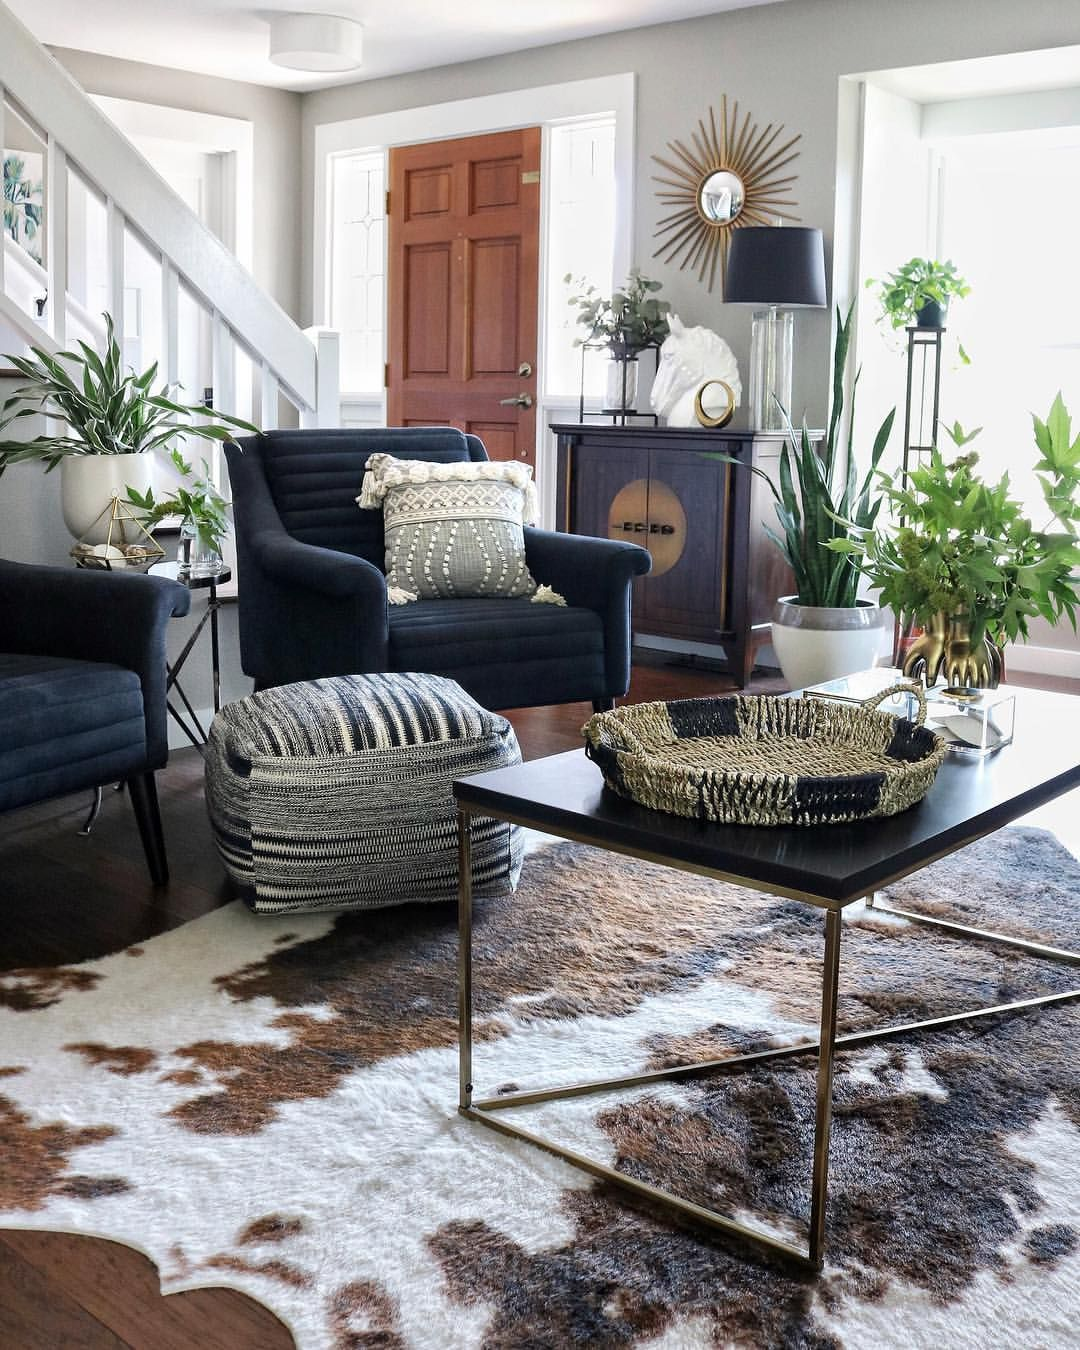 Living room with striped pouf, faux cow hide, & plants